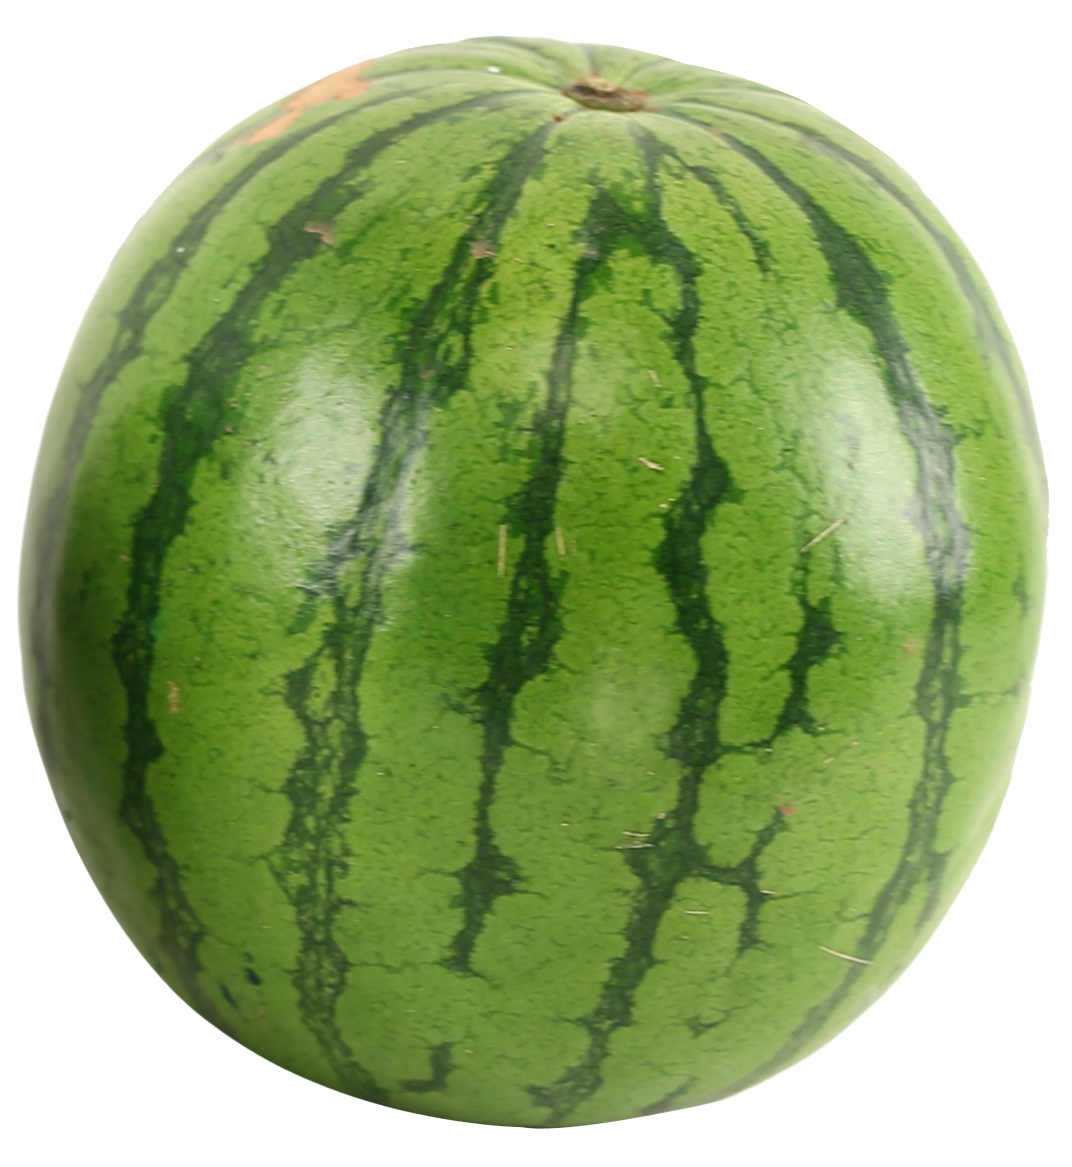 Watermelon PNG Image.